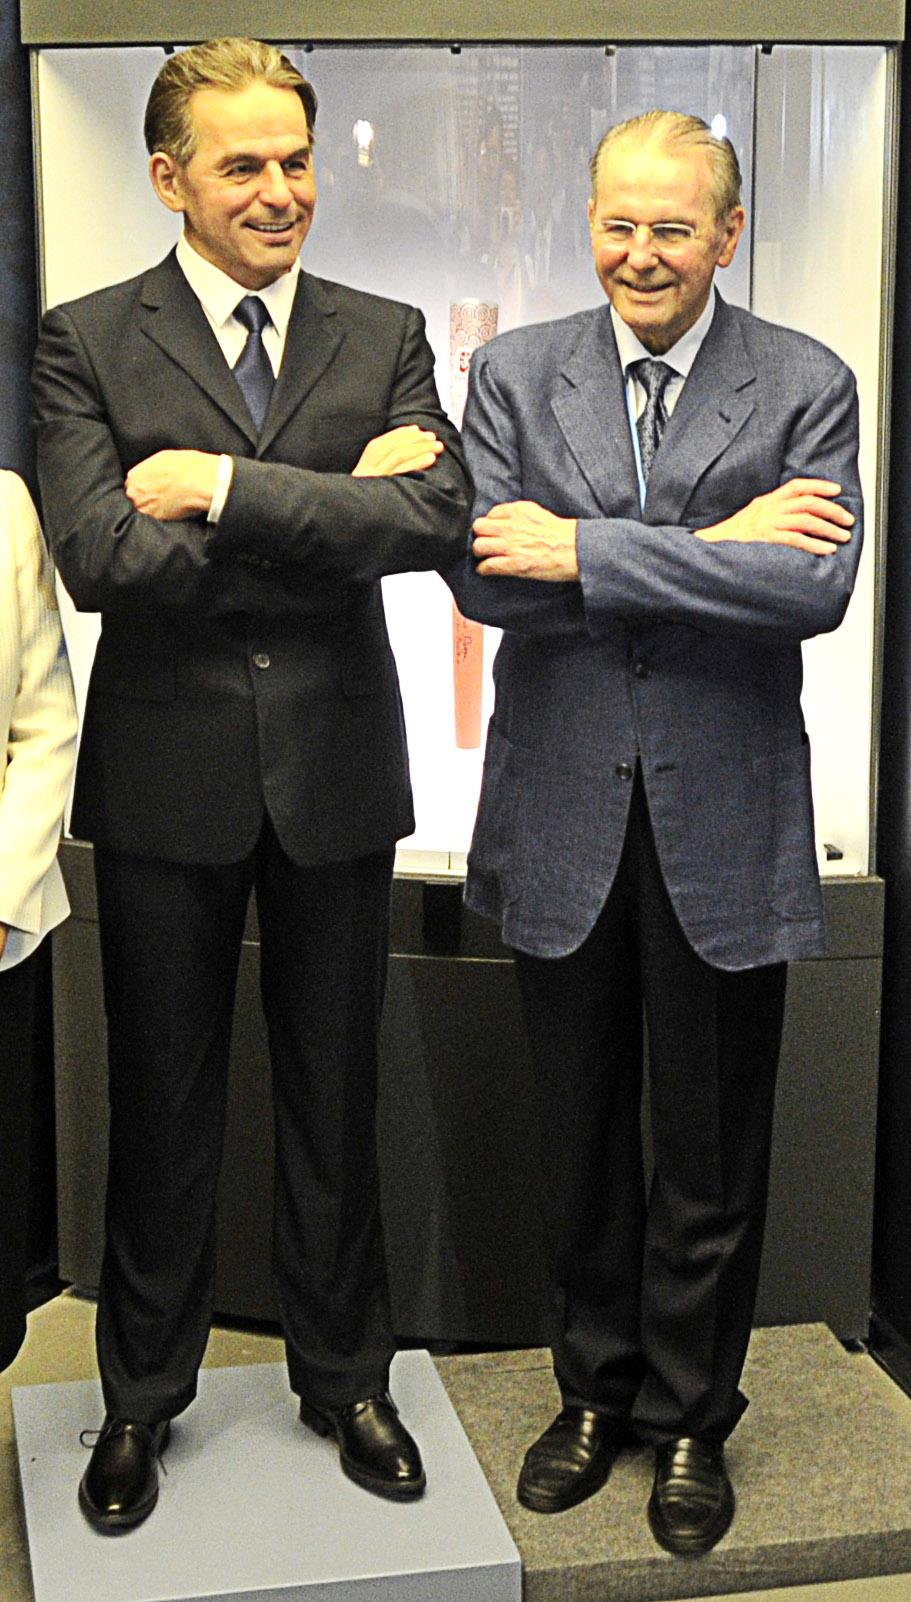 Former IOC chief Jacques Rogge posed behind a waxwork...of himself ©Nanjing 2014